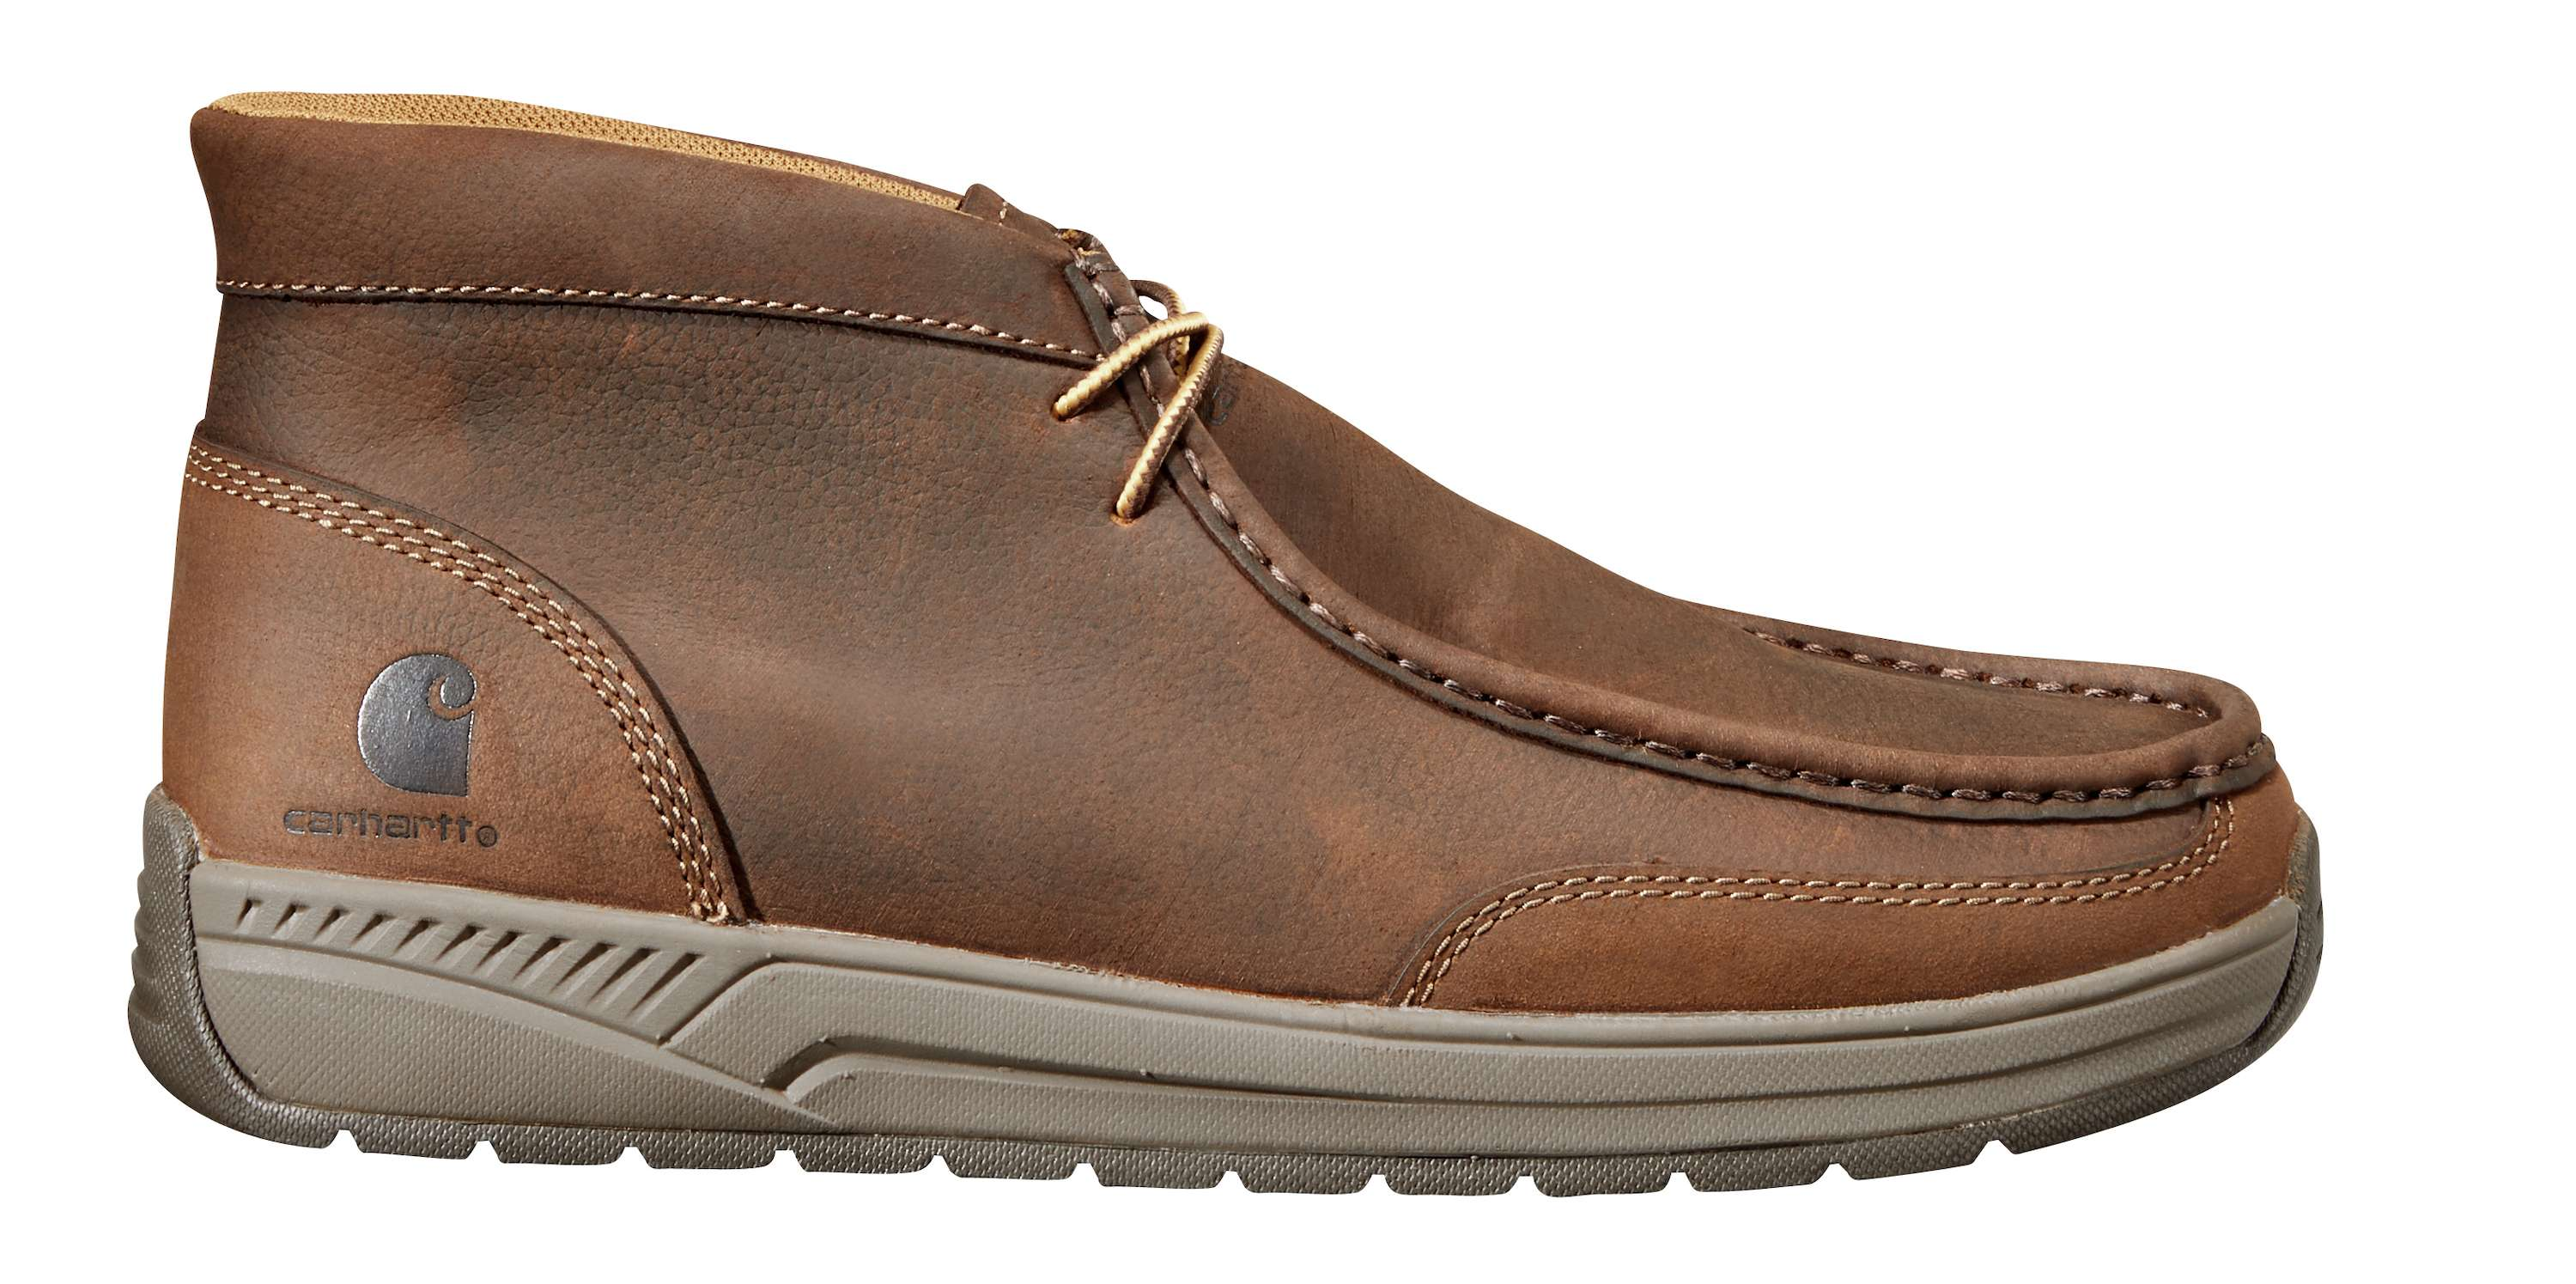 4-Inch Lightweight Non-Safety Toe Wedge Chukka